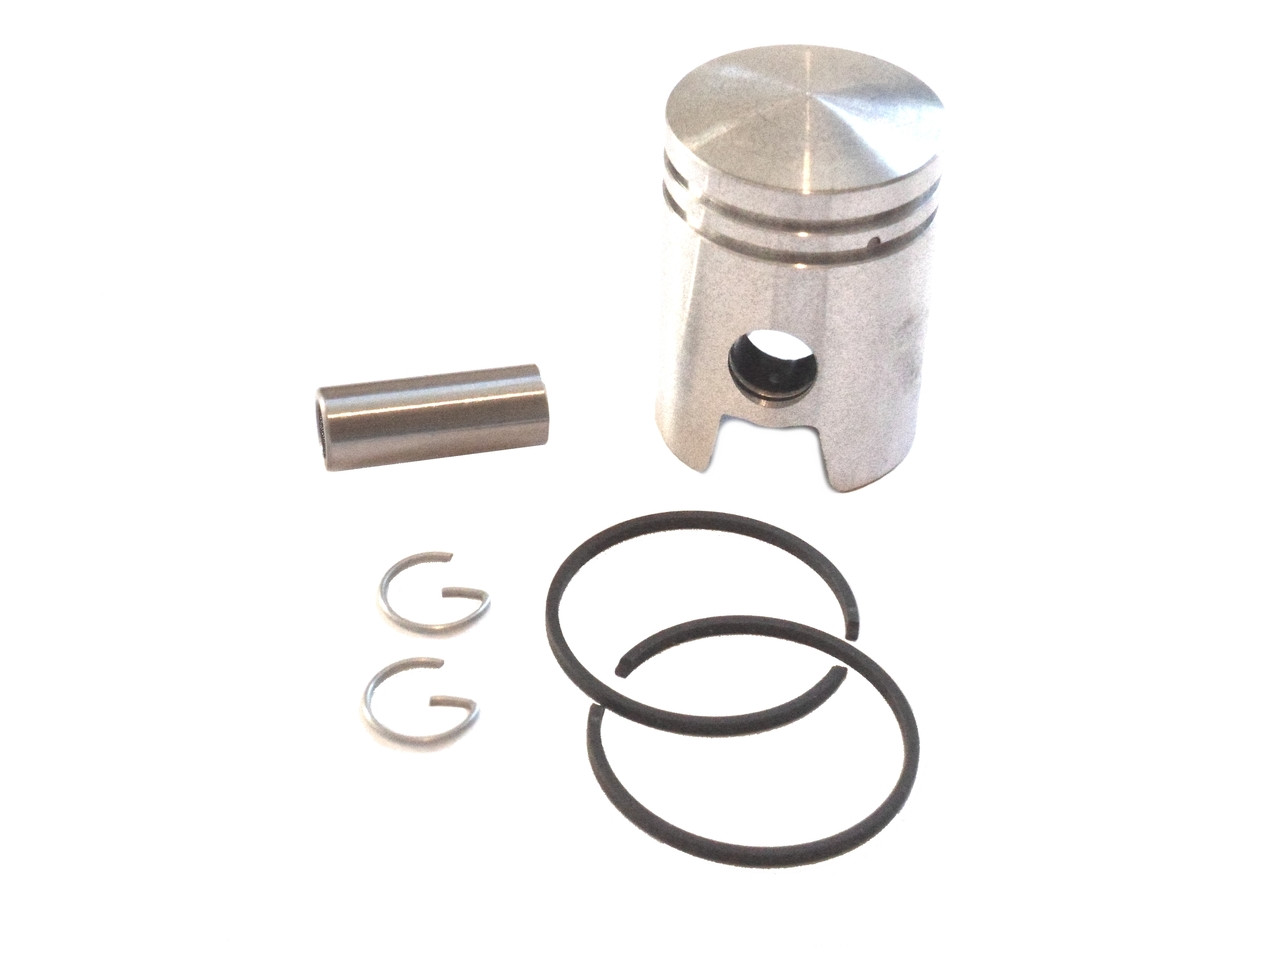 Stock Sachs Hercules Moped Piston Kit - 38mm